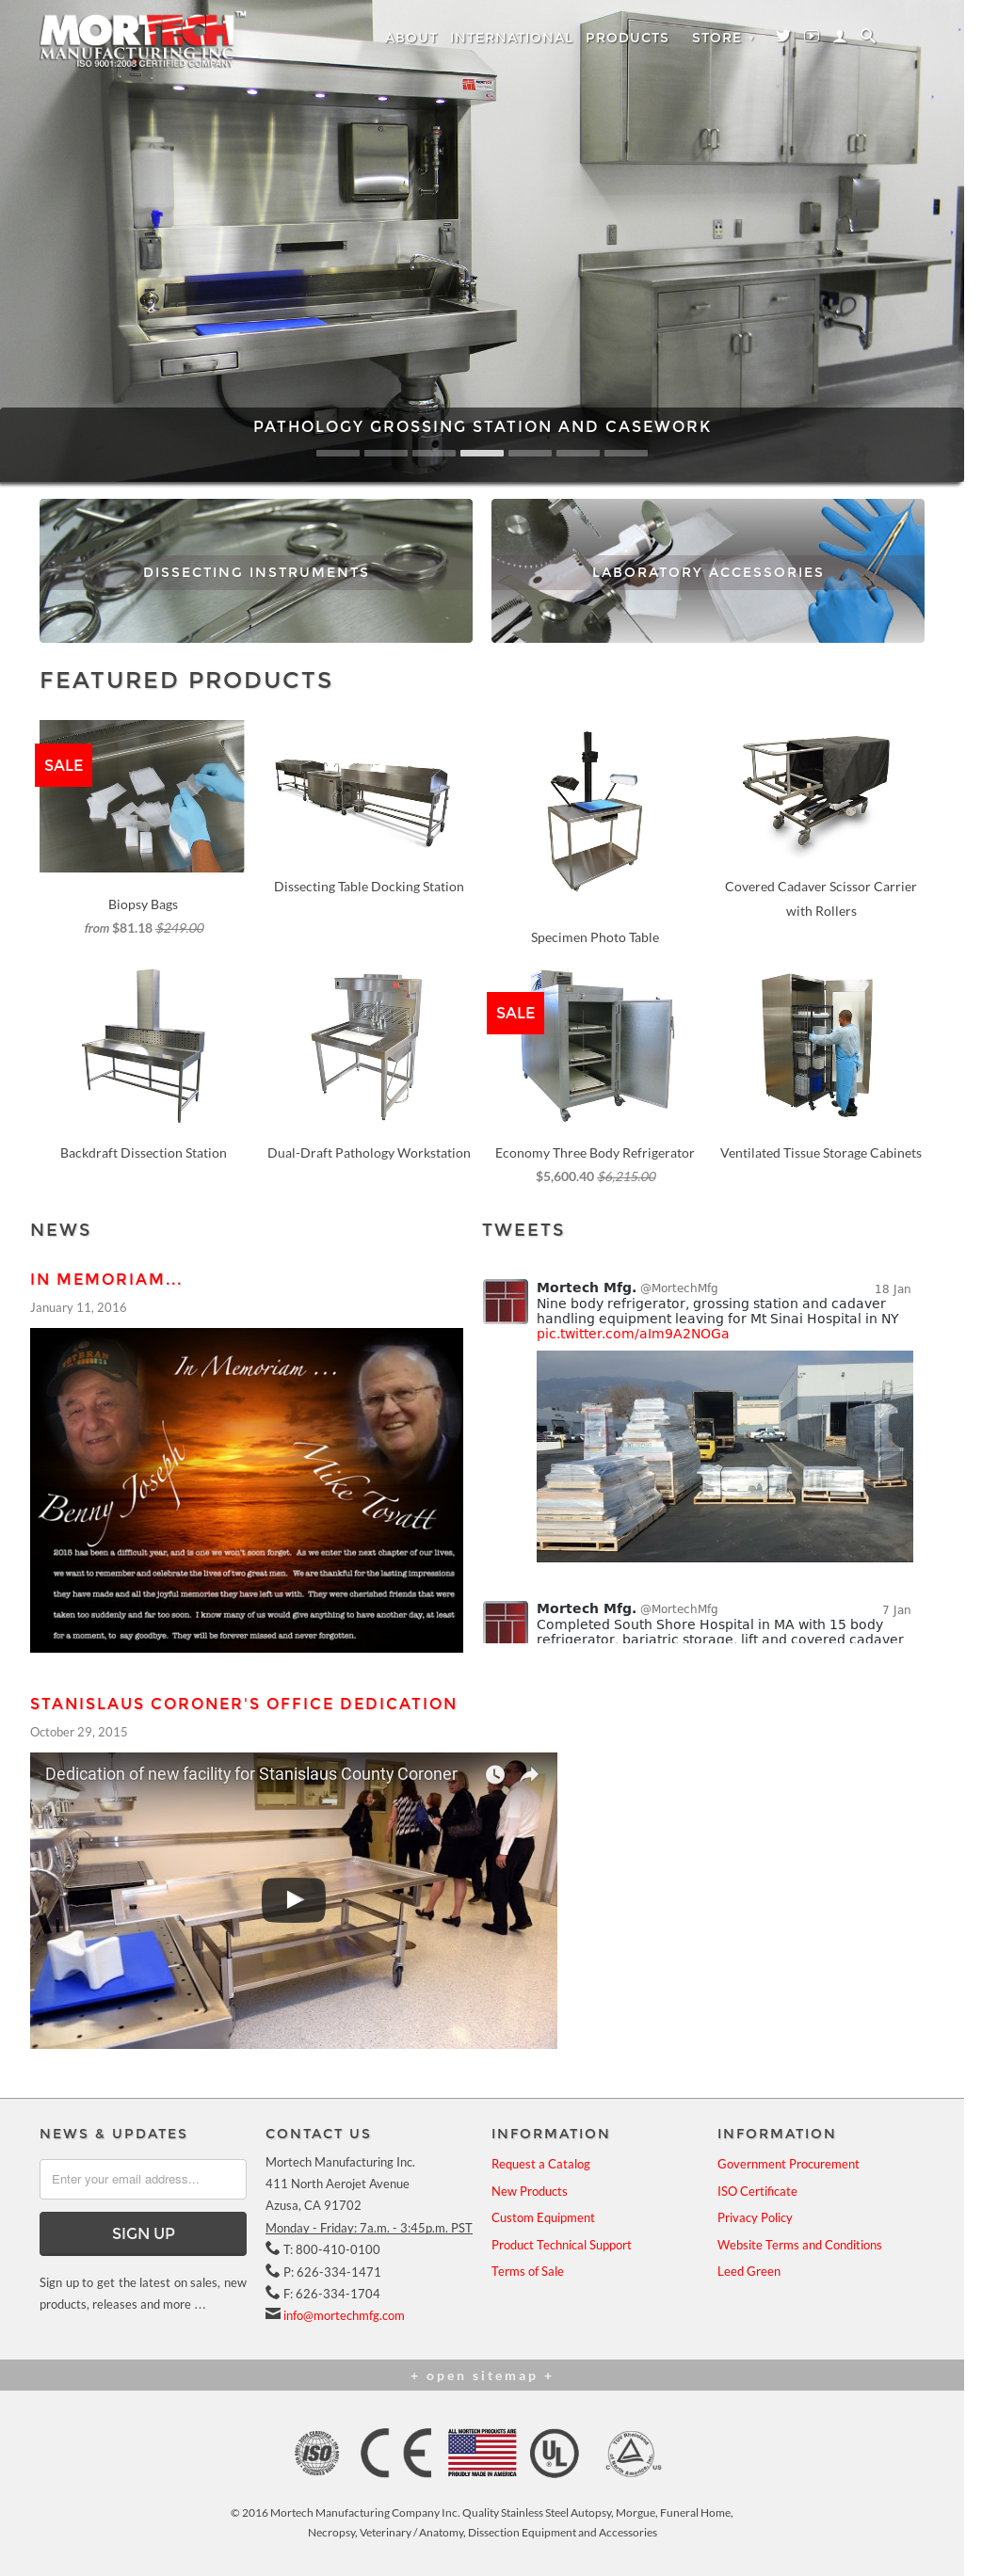 Mortech Competitors, Revenue and Employees - Owler Company